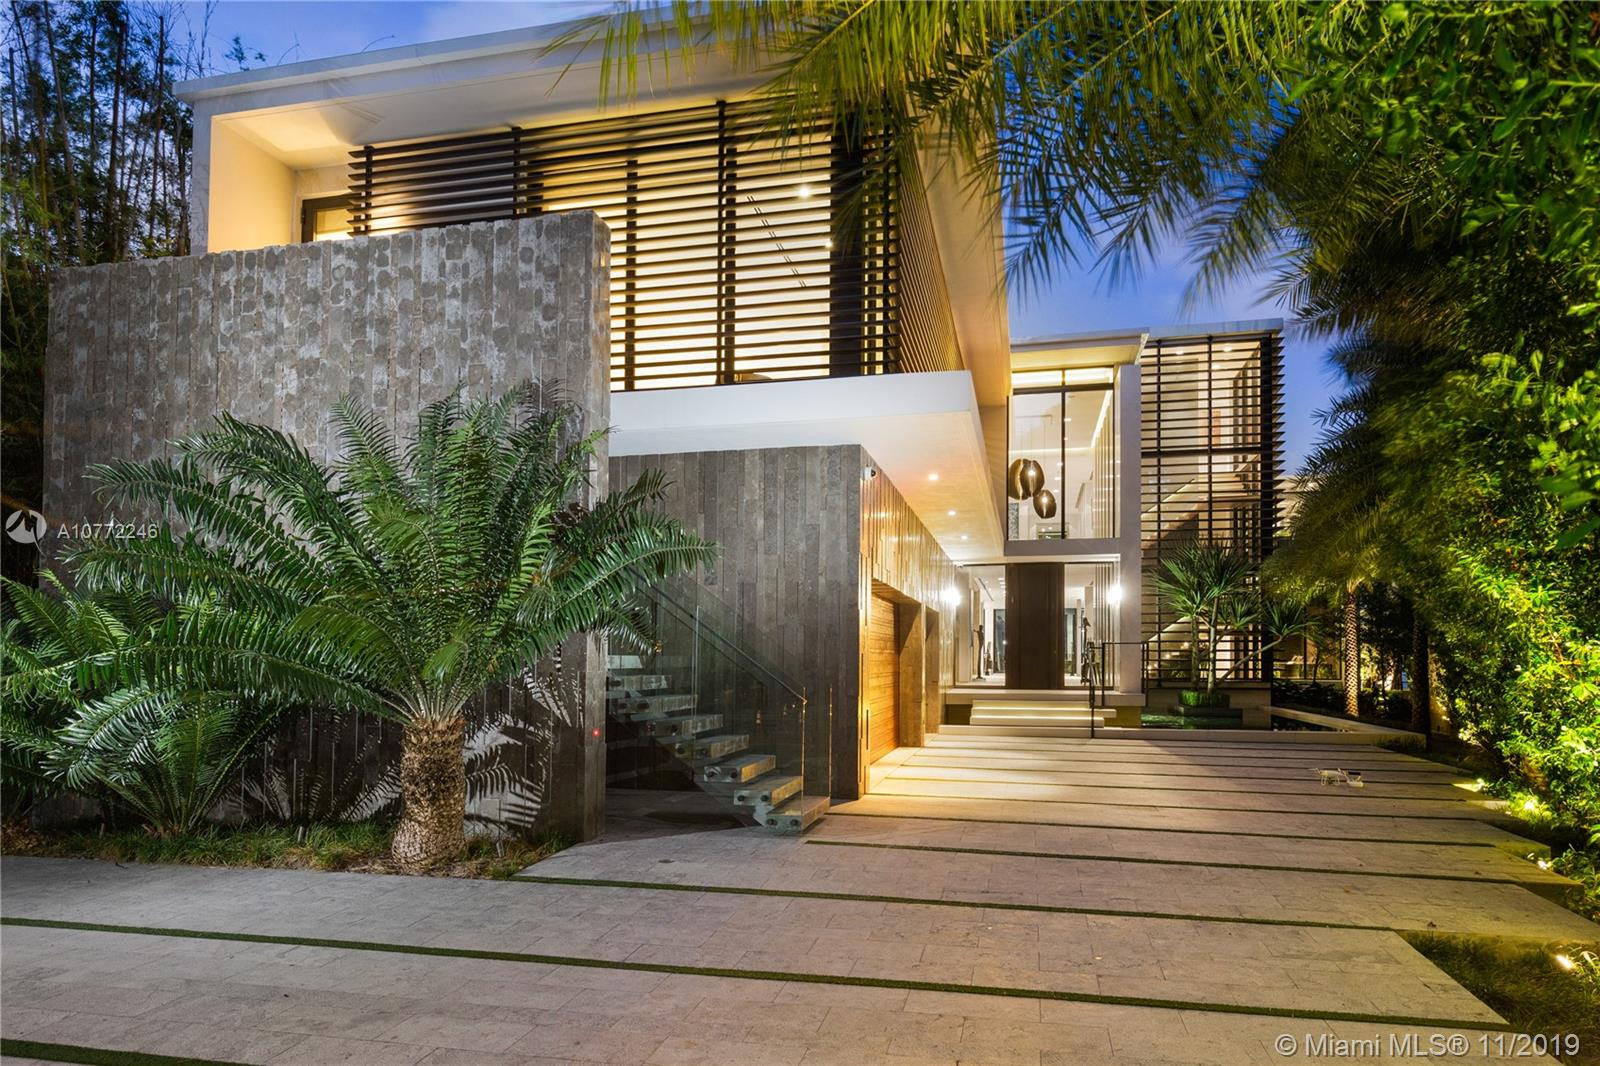 15 Palm Ave Luxury Real Estate